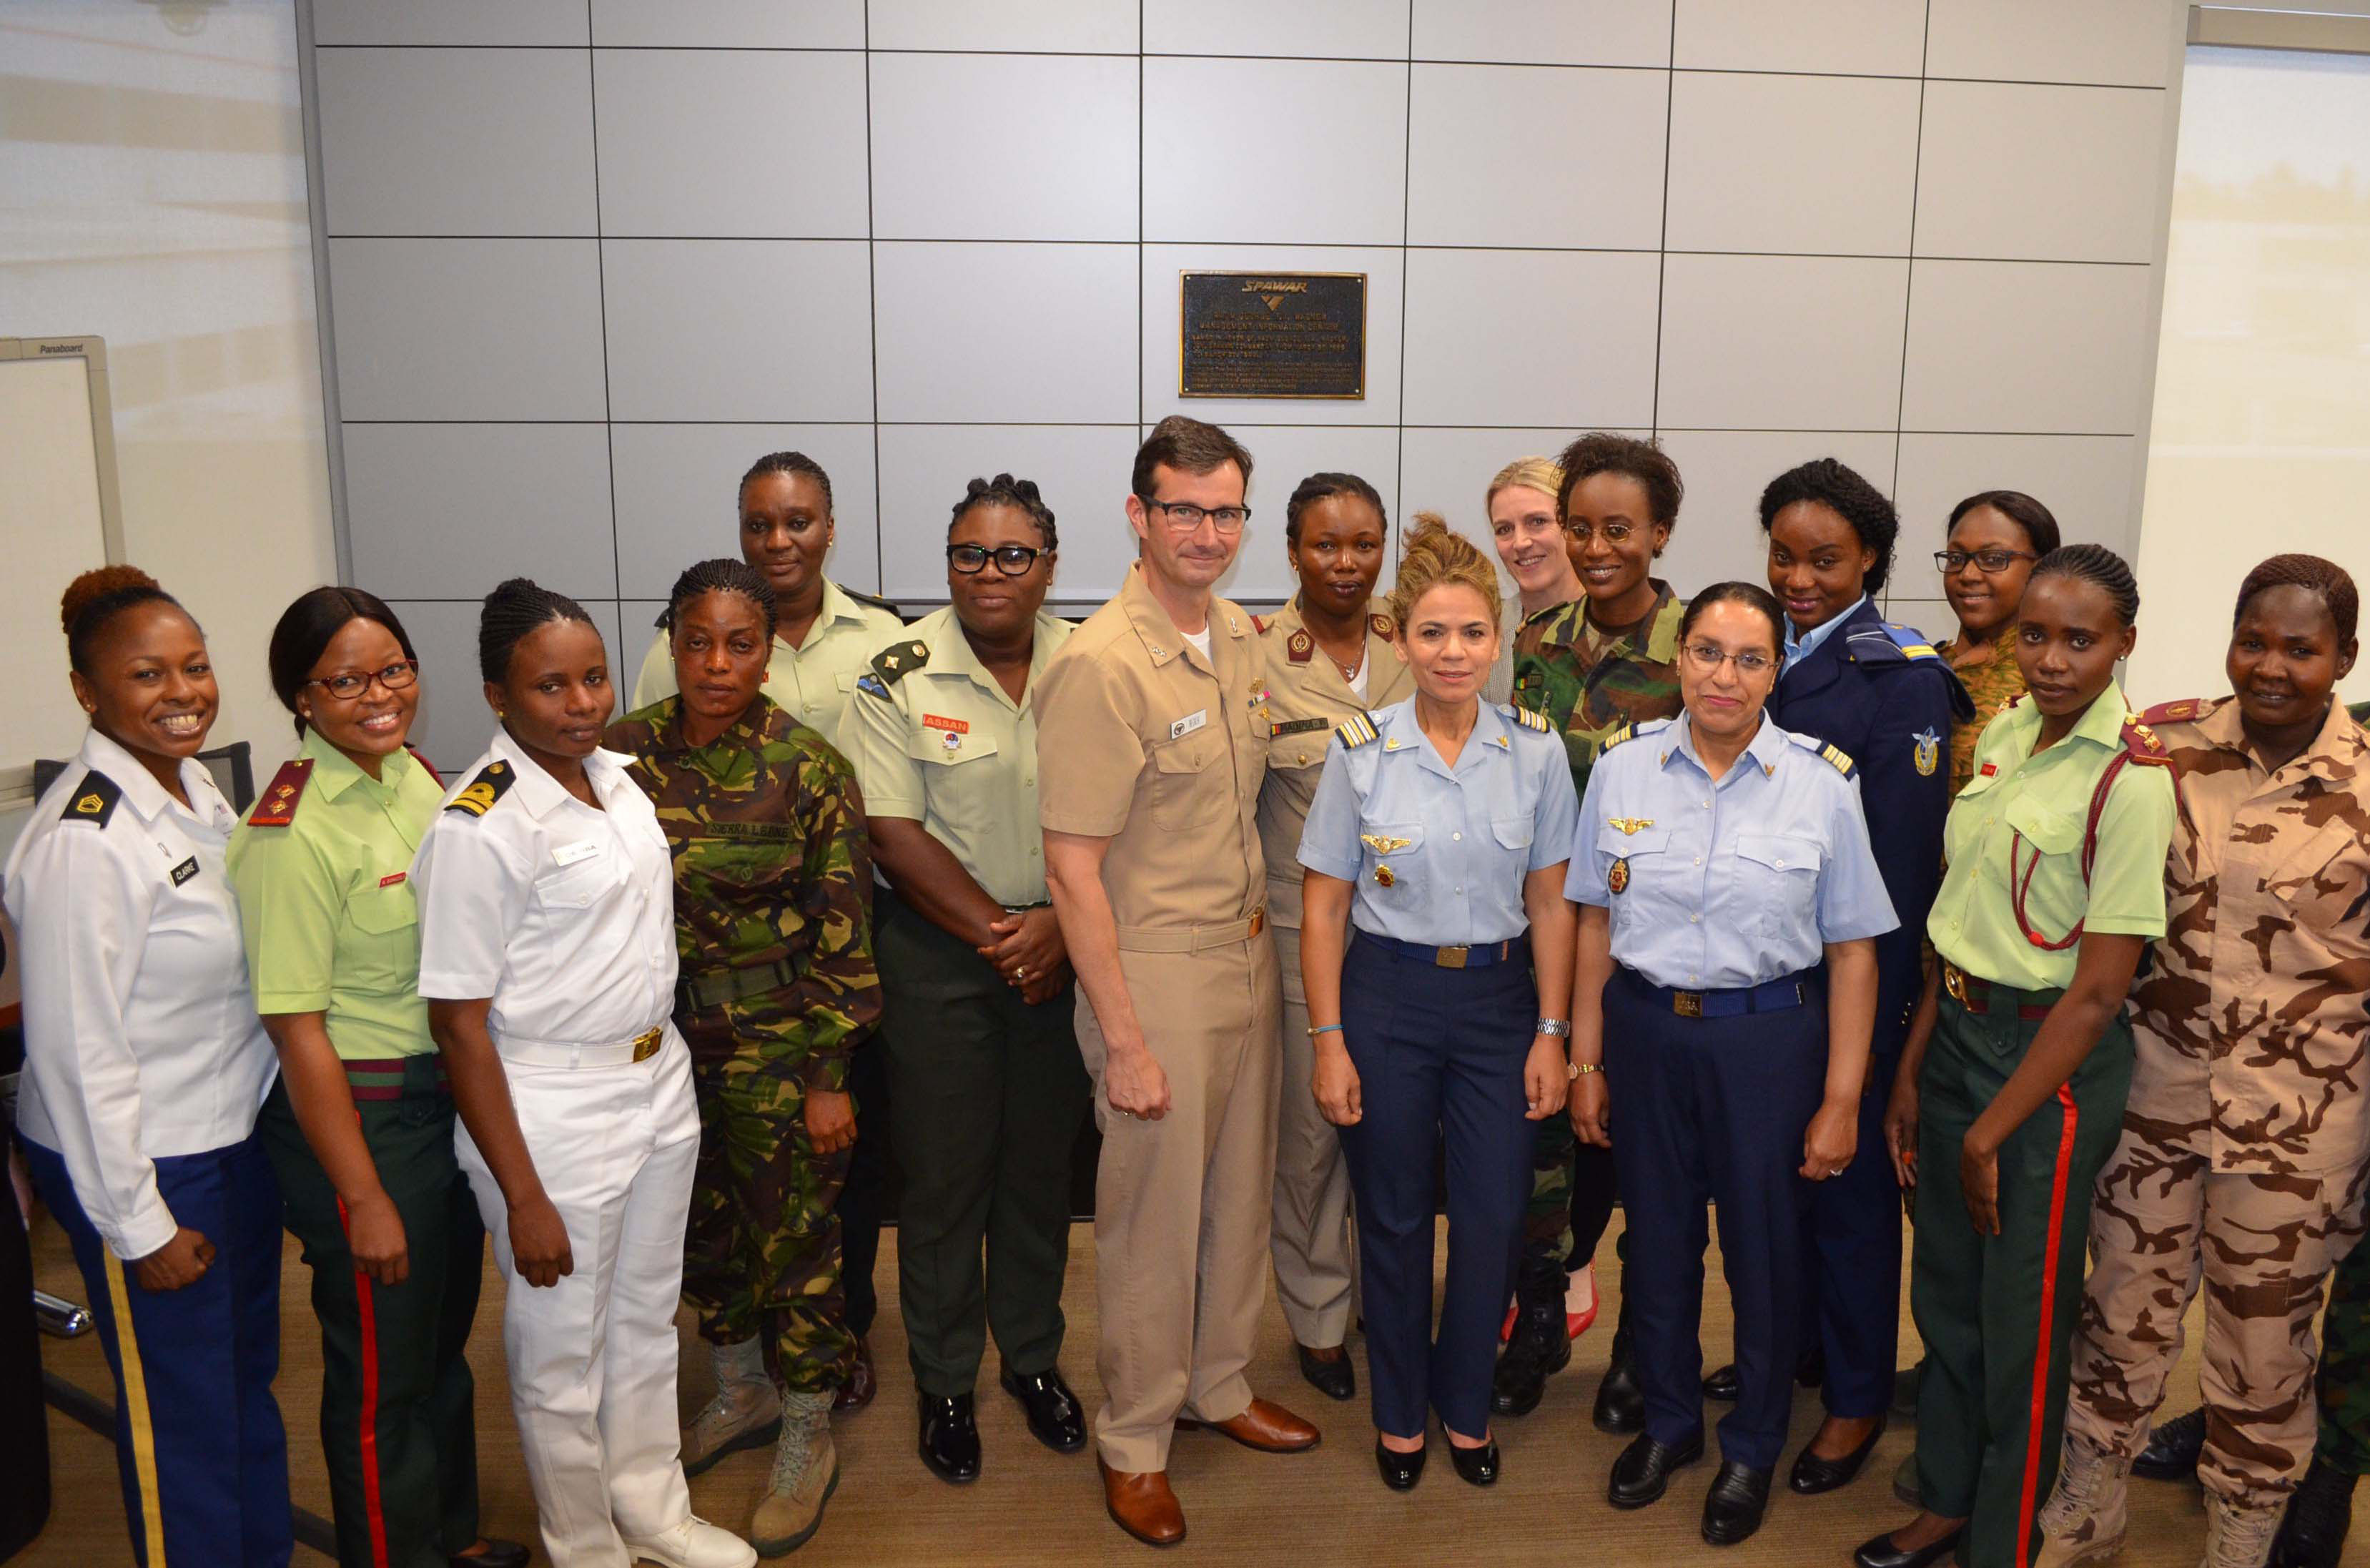 Navy Rear Adm. Christian Becker, commander, Space and Naval Warfare Systems Command (center), welcomes a delegation of African women military communications specialists June 19 aboard SPAWAR Headquarters as part of U.S. Africa Command's Women's Military-to-Military Engagement Program. U.S. Navy photo by Steven A. Davis (Released) 180619-N-PJ405-002